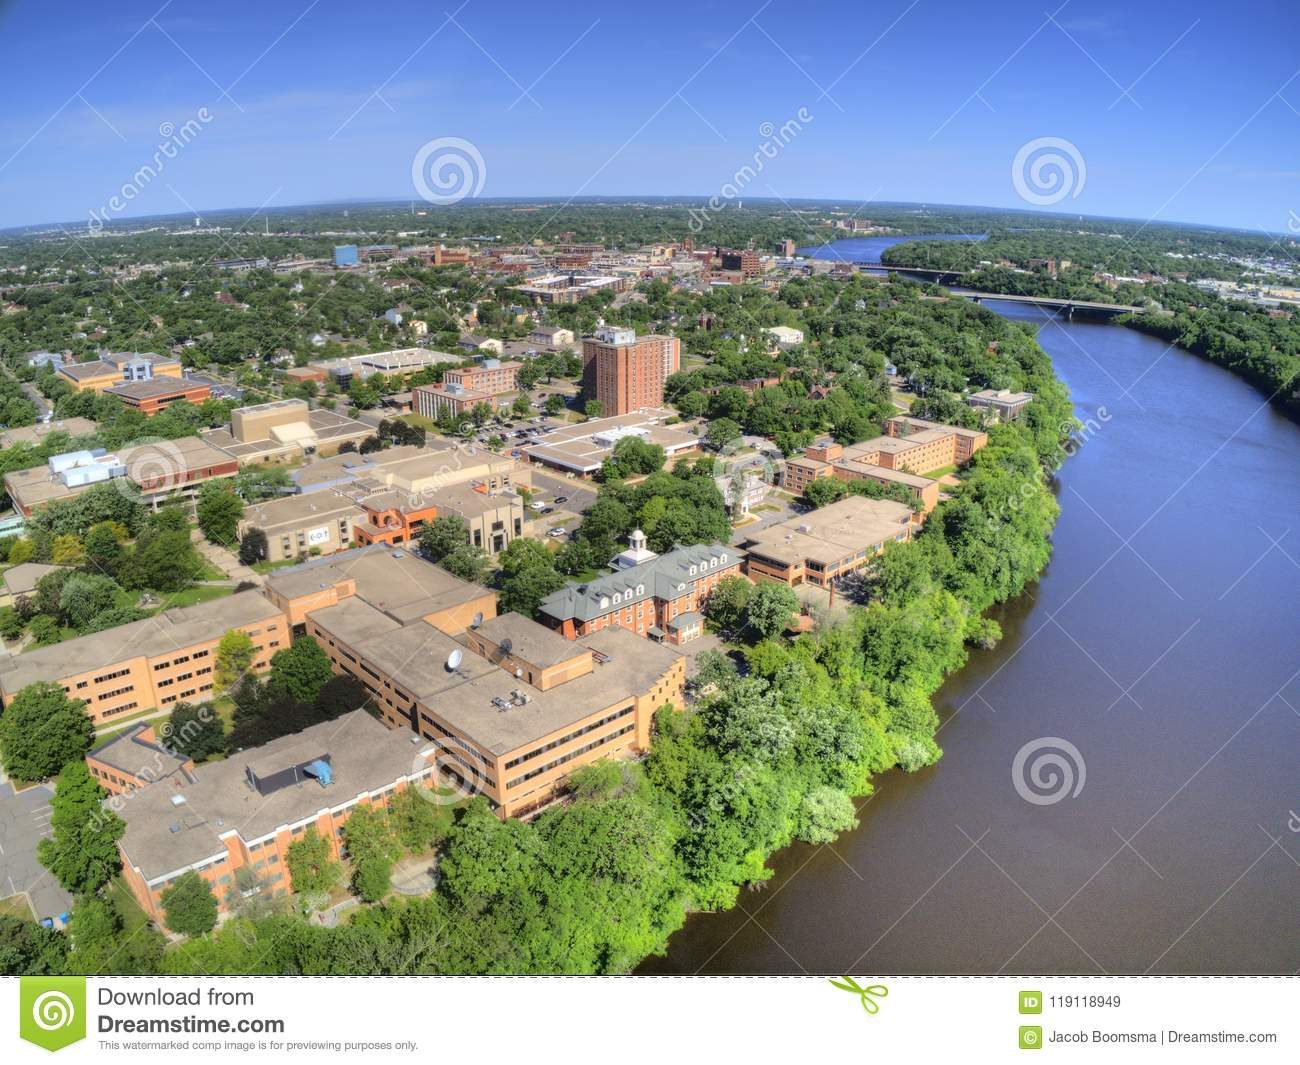 St. Cloud University is a College on the Mississippi River in Central Minnesota